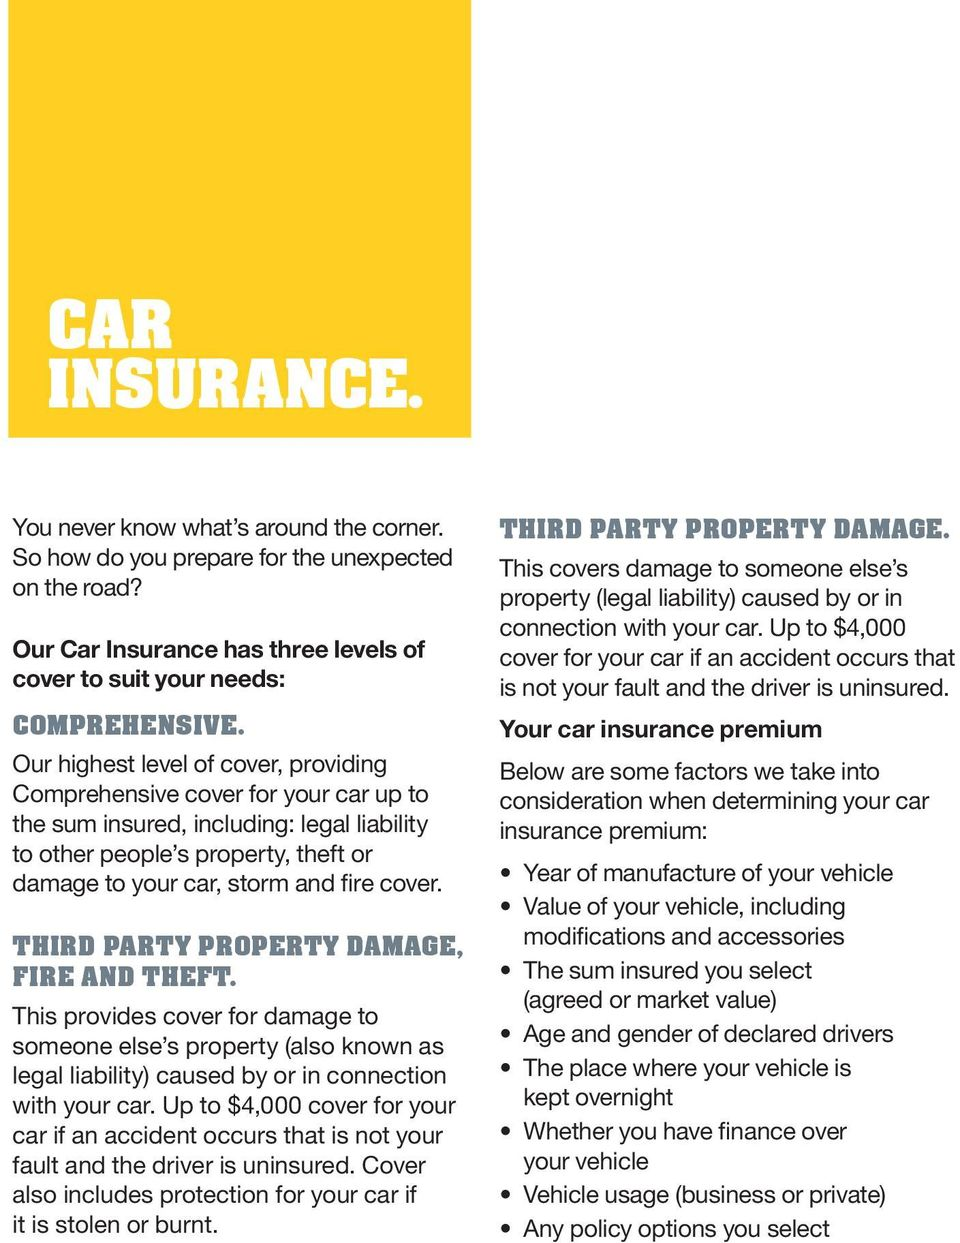 THIRD PARTY PROPERTY DAMAGE, FIRE AND THEFT. This provides cover for damage to someone else s property (also known as legal liability) caused by or in connection with your car.